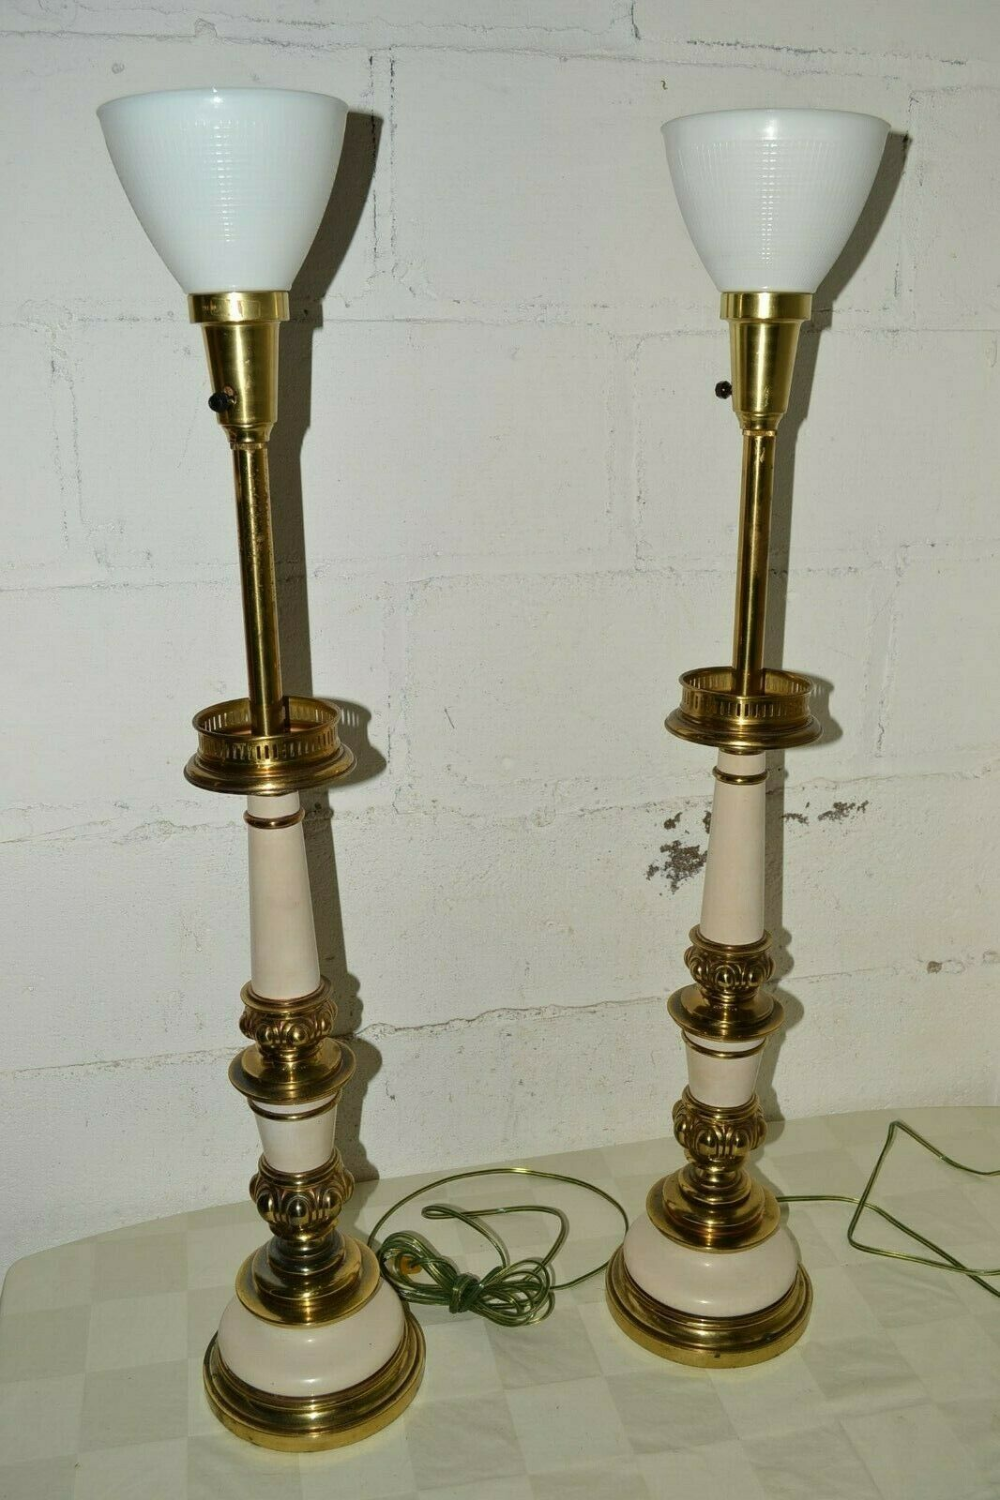 70s Vintage Stiffel Hollywood Regency Mcm Gold White Table Torchiere Lamp Pair Ebay In 2020 Torchiere Lamp Floor Lamp Lighting Lamp